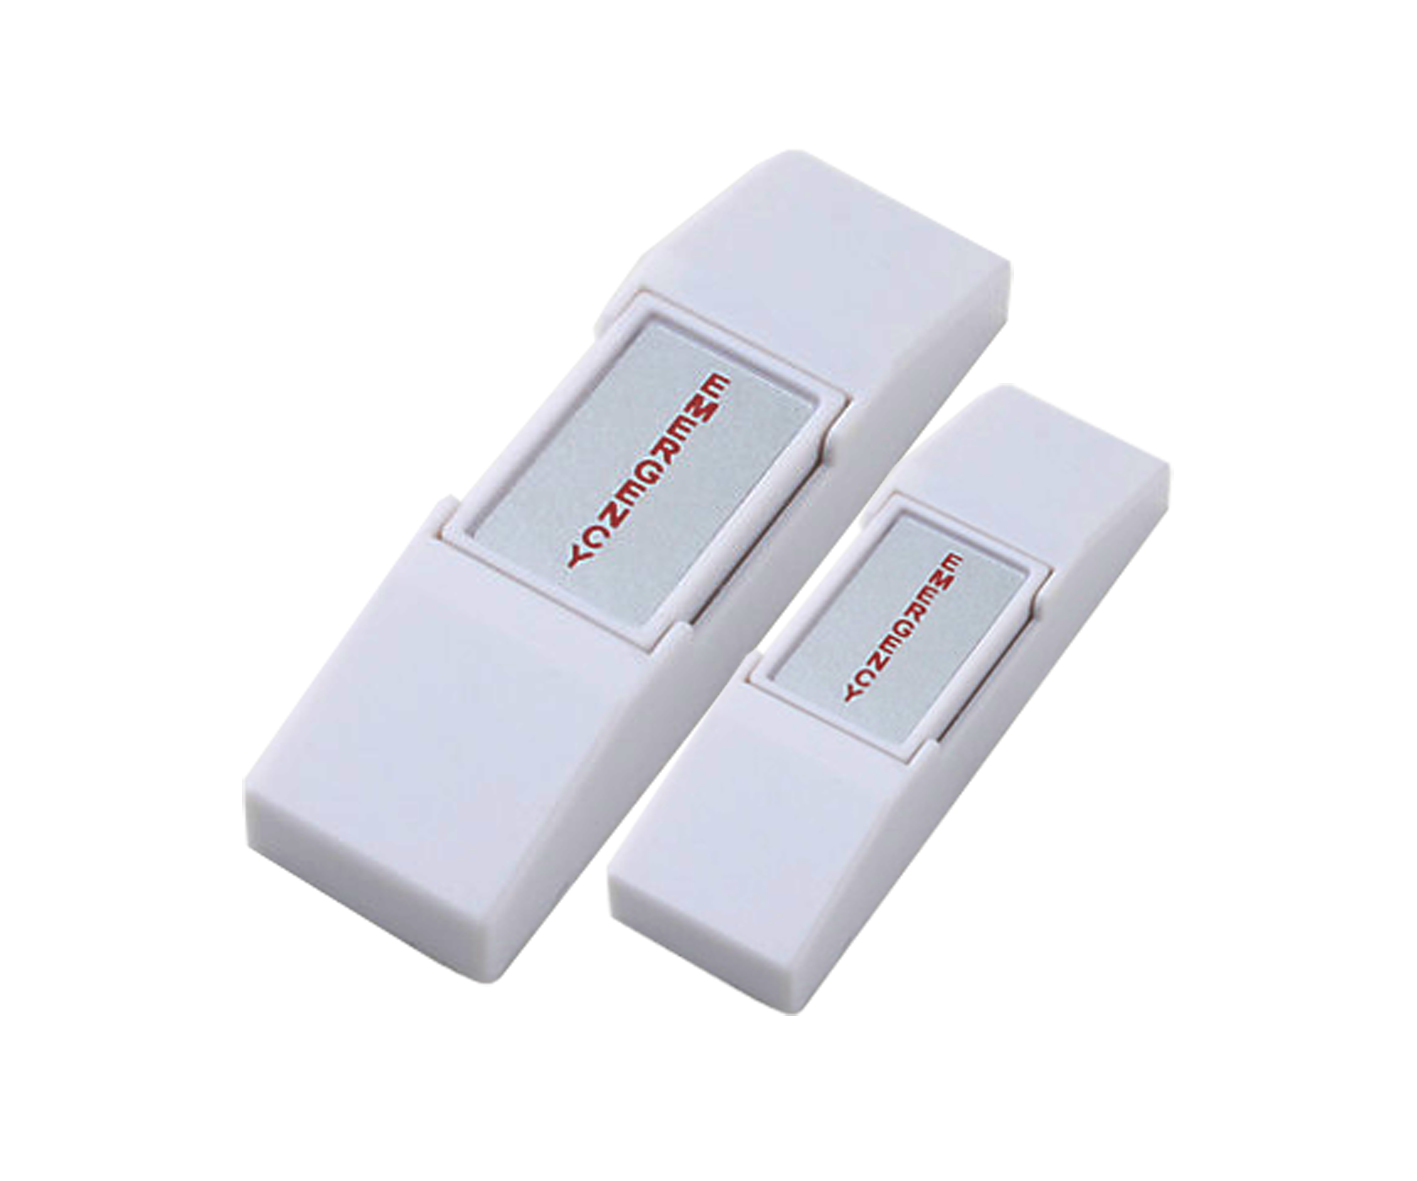 How To Connect Dvr To Alarm Systems in addition Ms 2321 Emergency Panic Button additionally Heat Detector in addition Torch Personal Alarm 360341 in addition Larm. on siren alarm with strobe